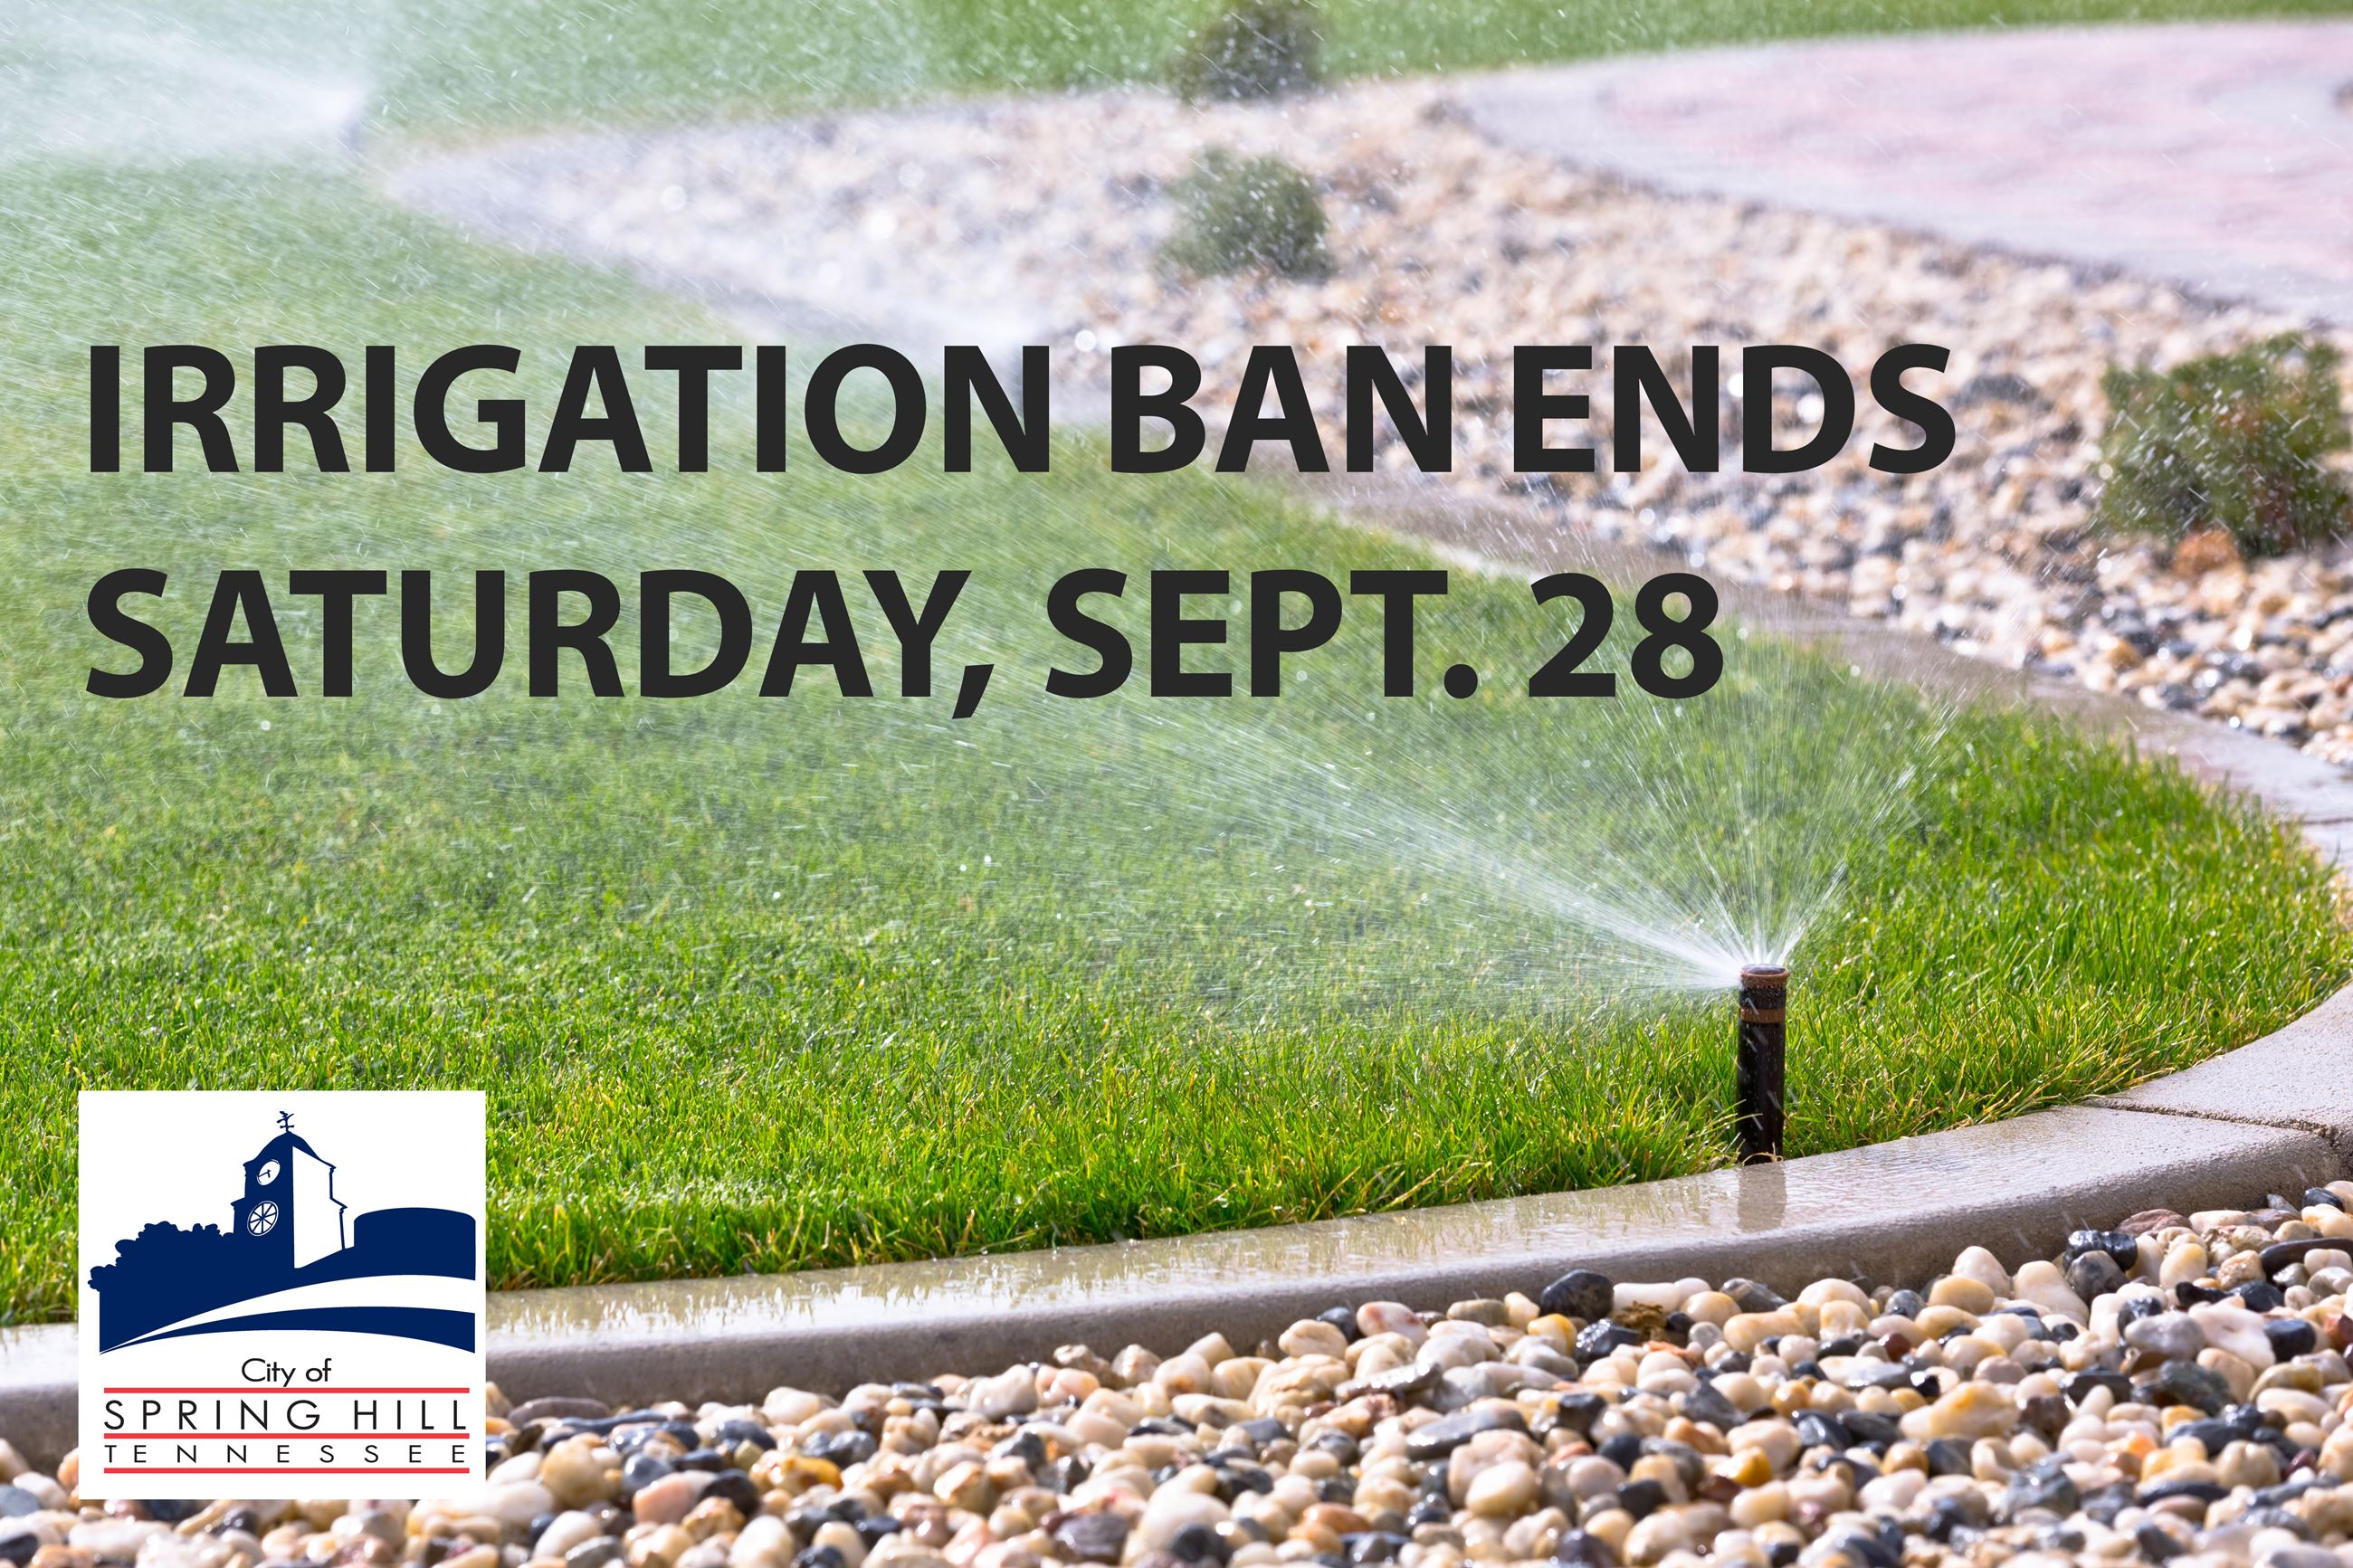 Irrigation Ban Ends September 28, 2019